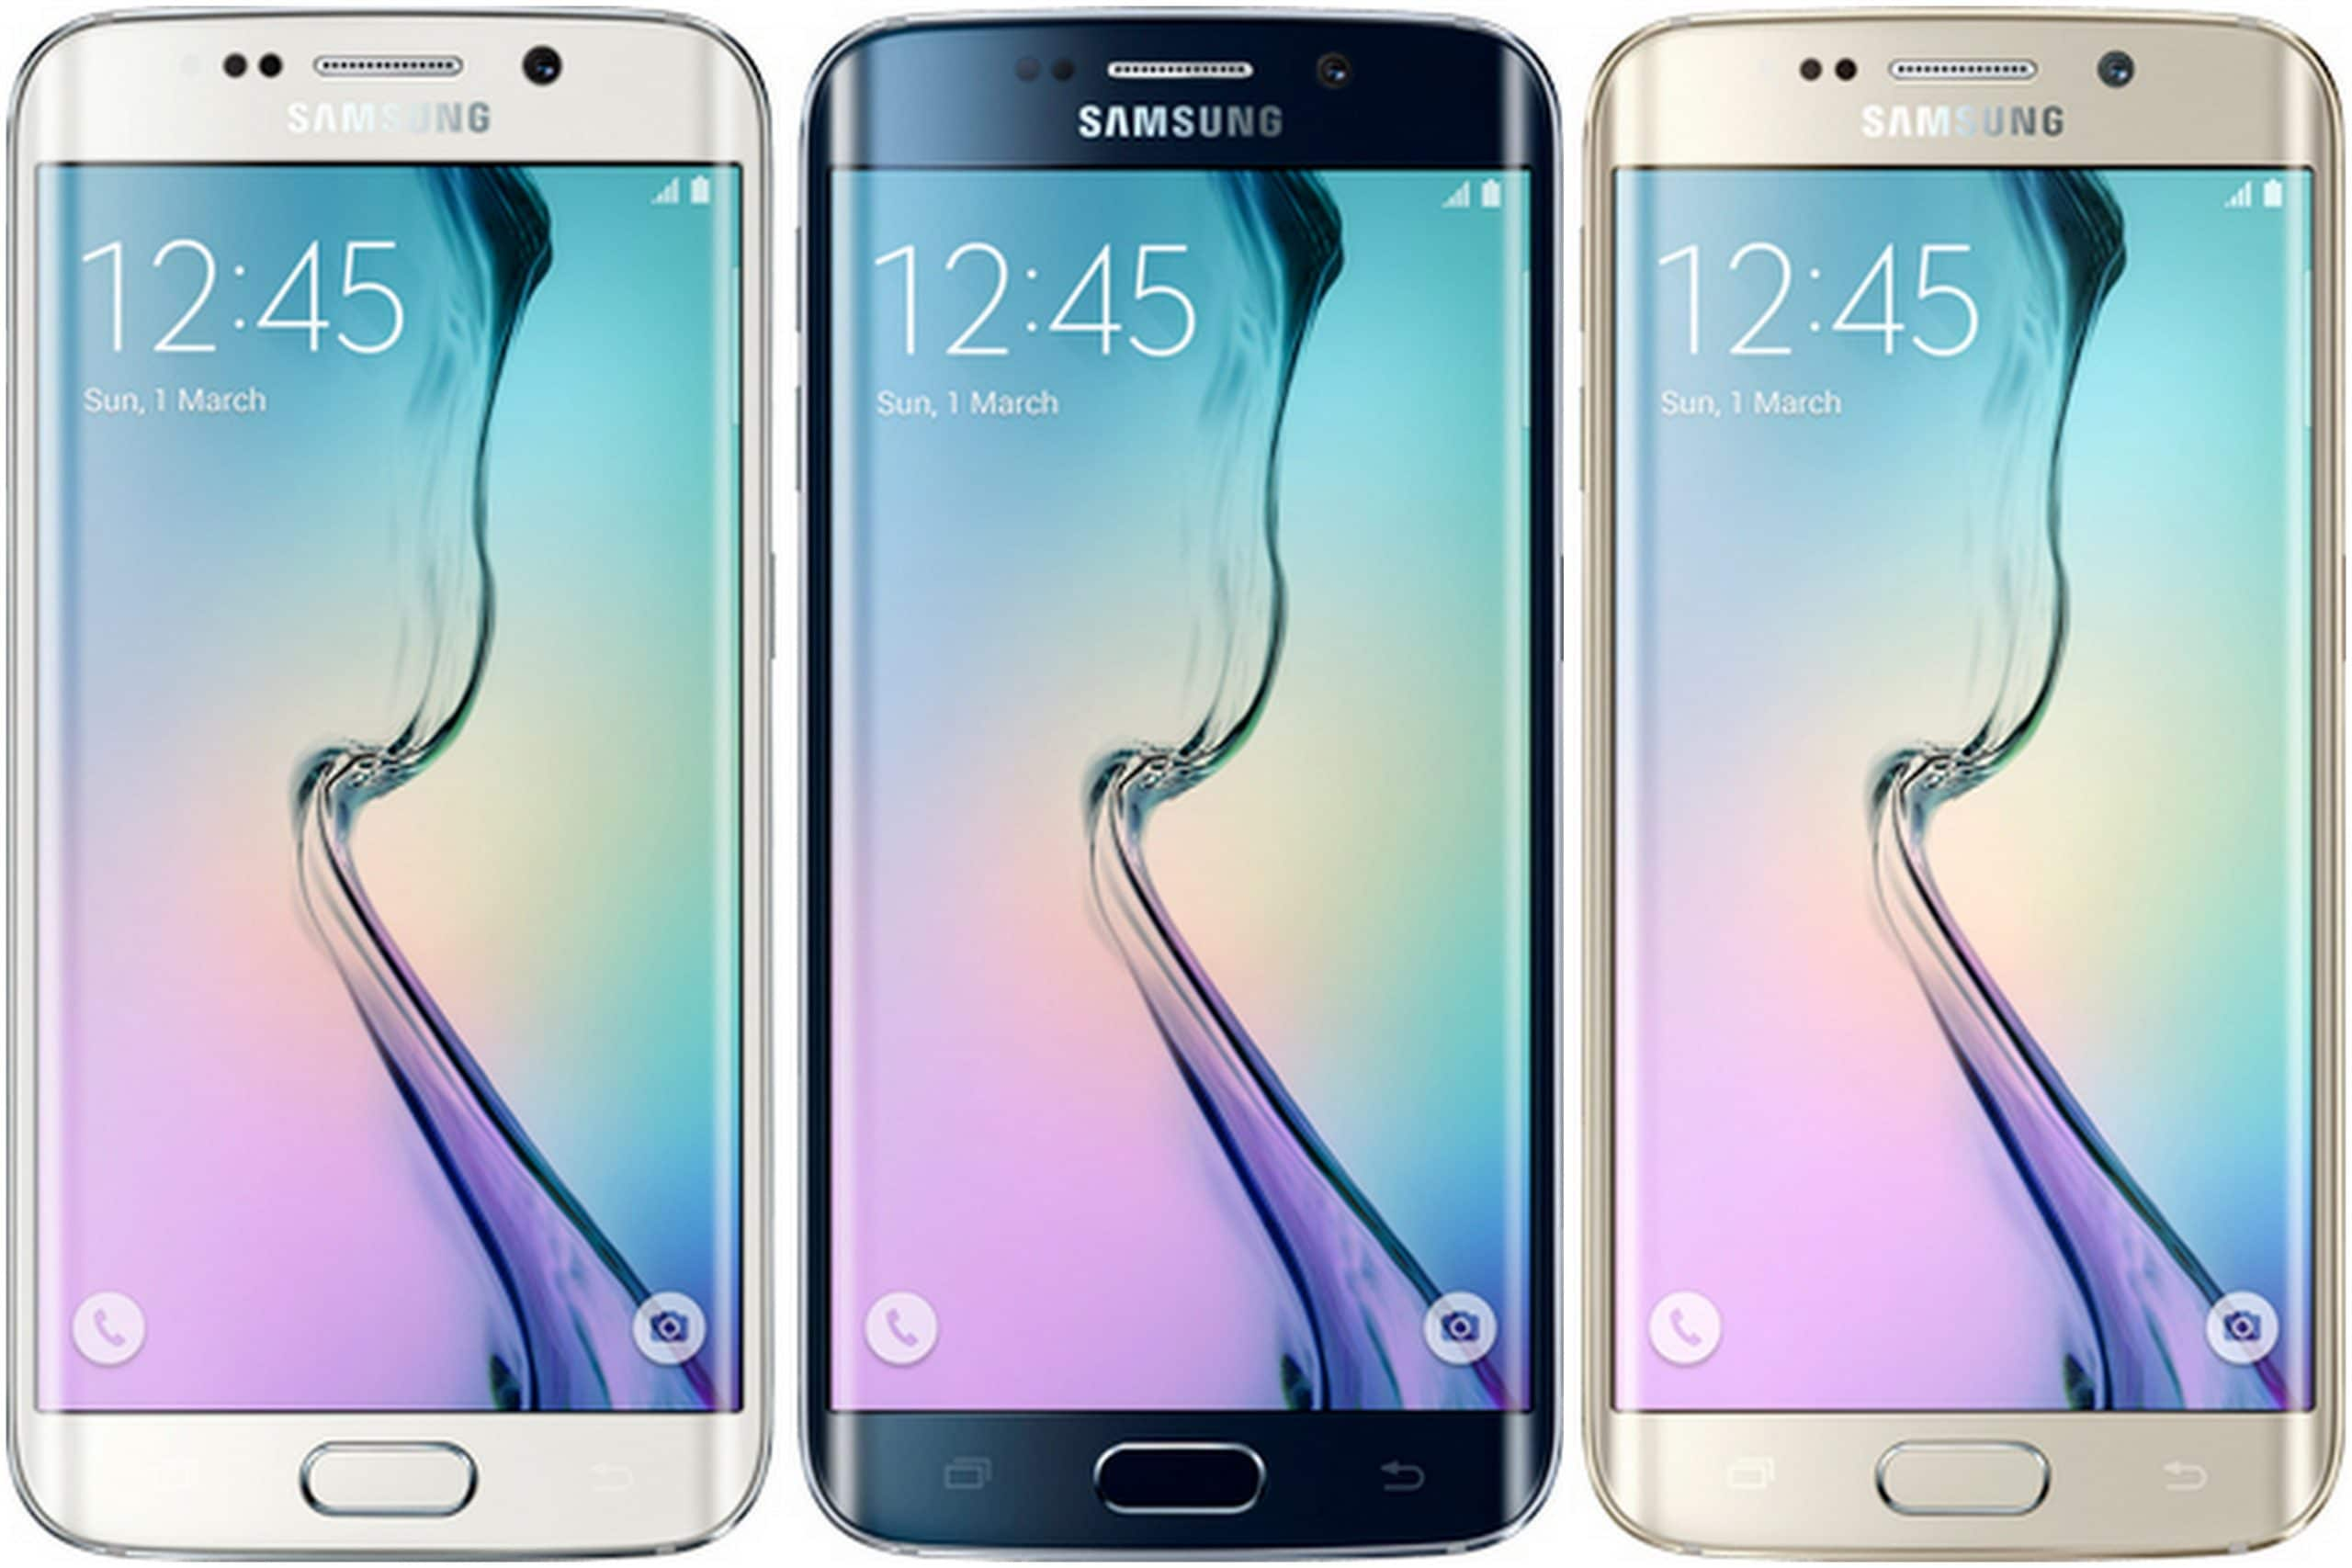 S6 S5 galaxy s3 hdmi List The Smartest And Fastest Android Smartphone In Nigeria